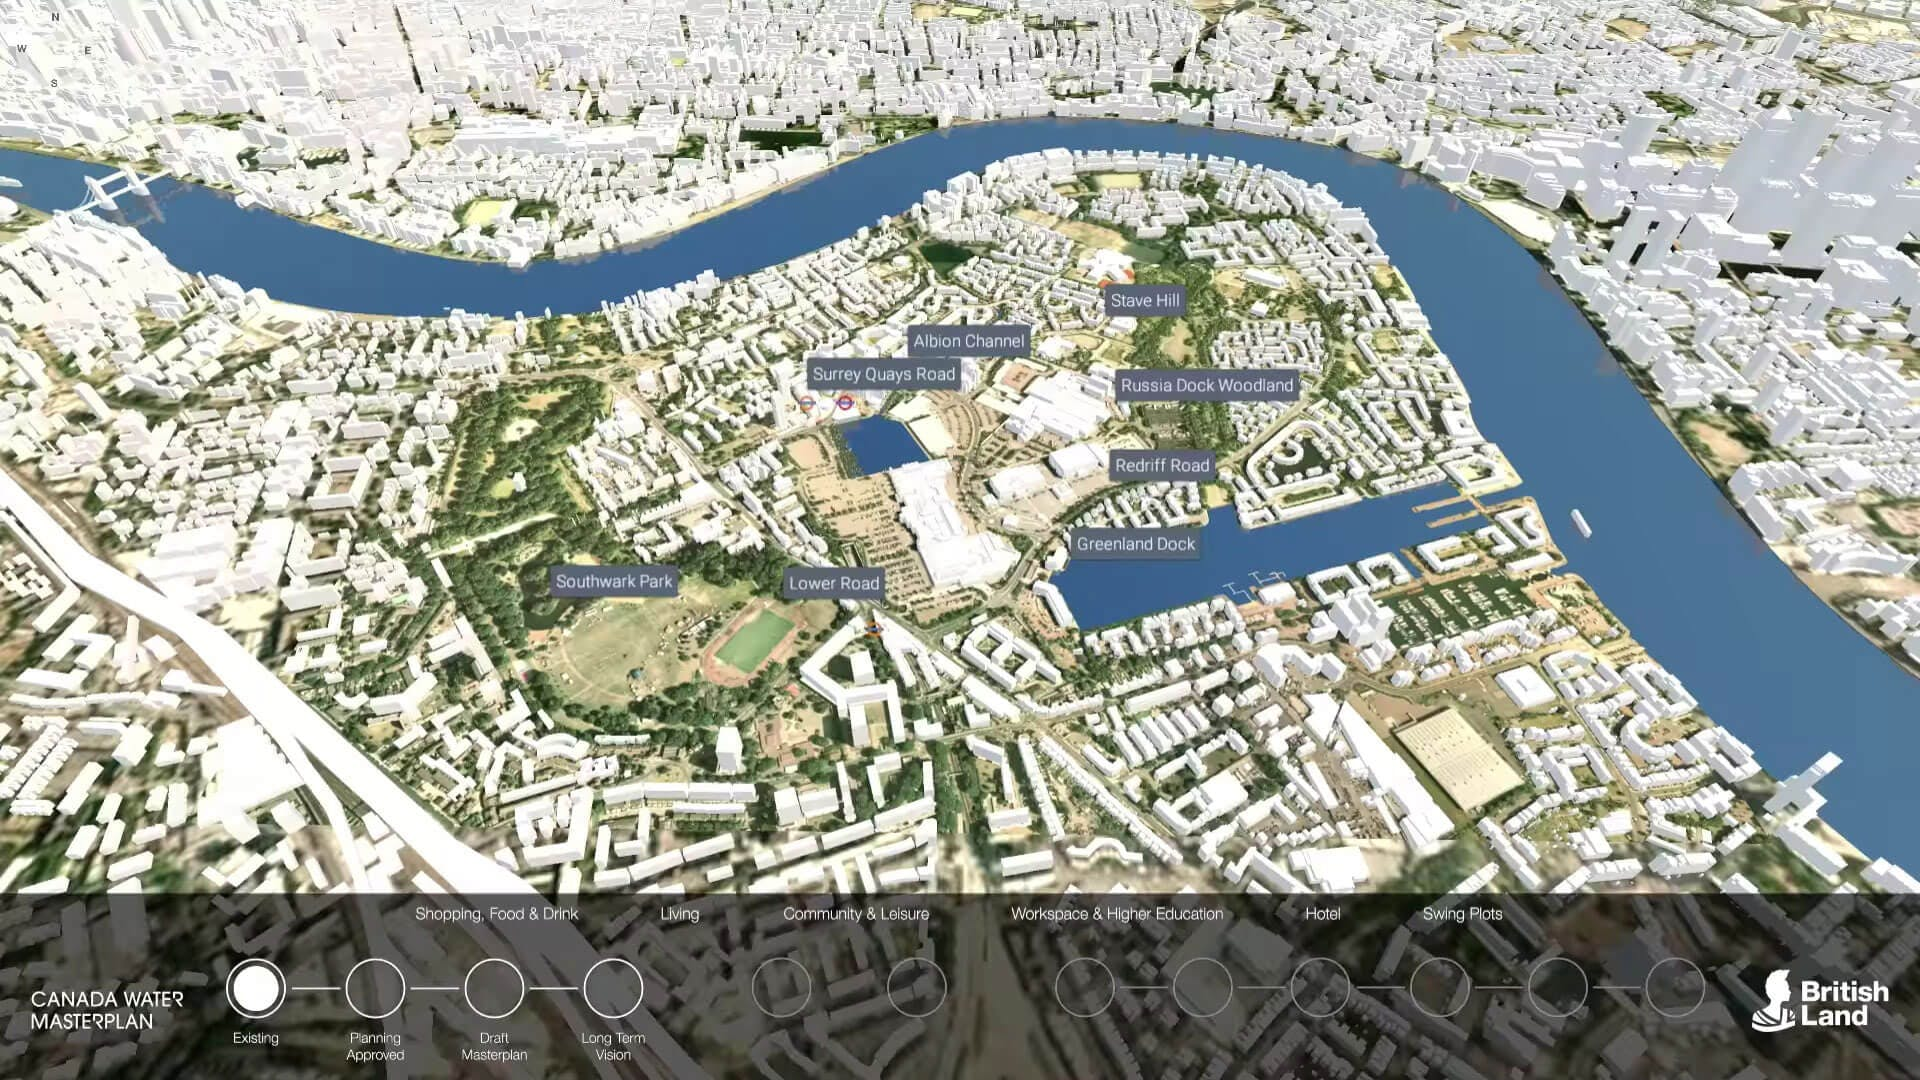 Canada Water interactive 3D consultation application